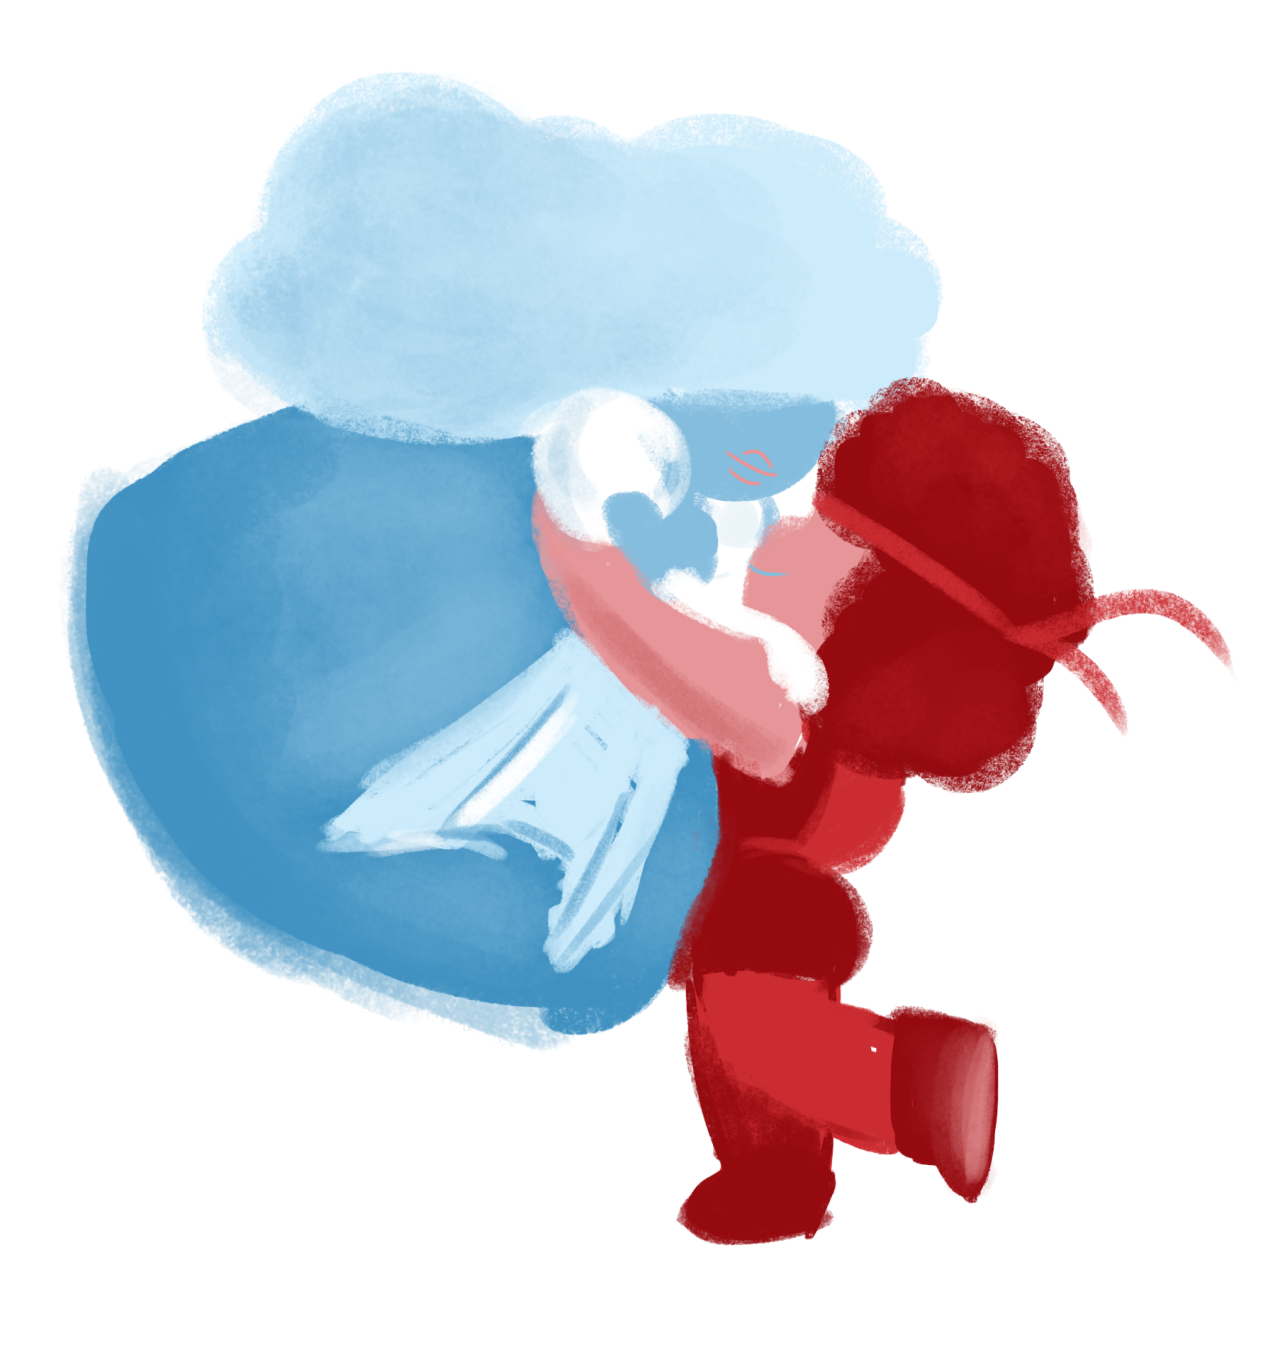 Ruby and Sapphire doodle from the other night.